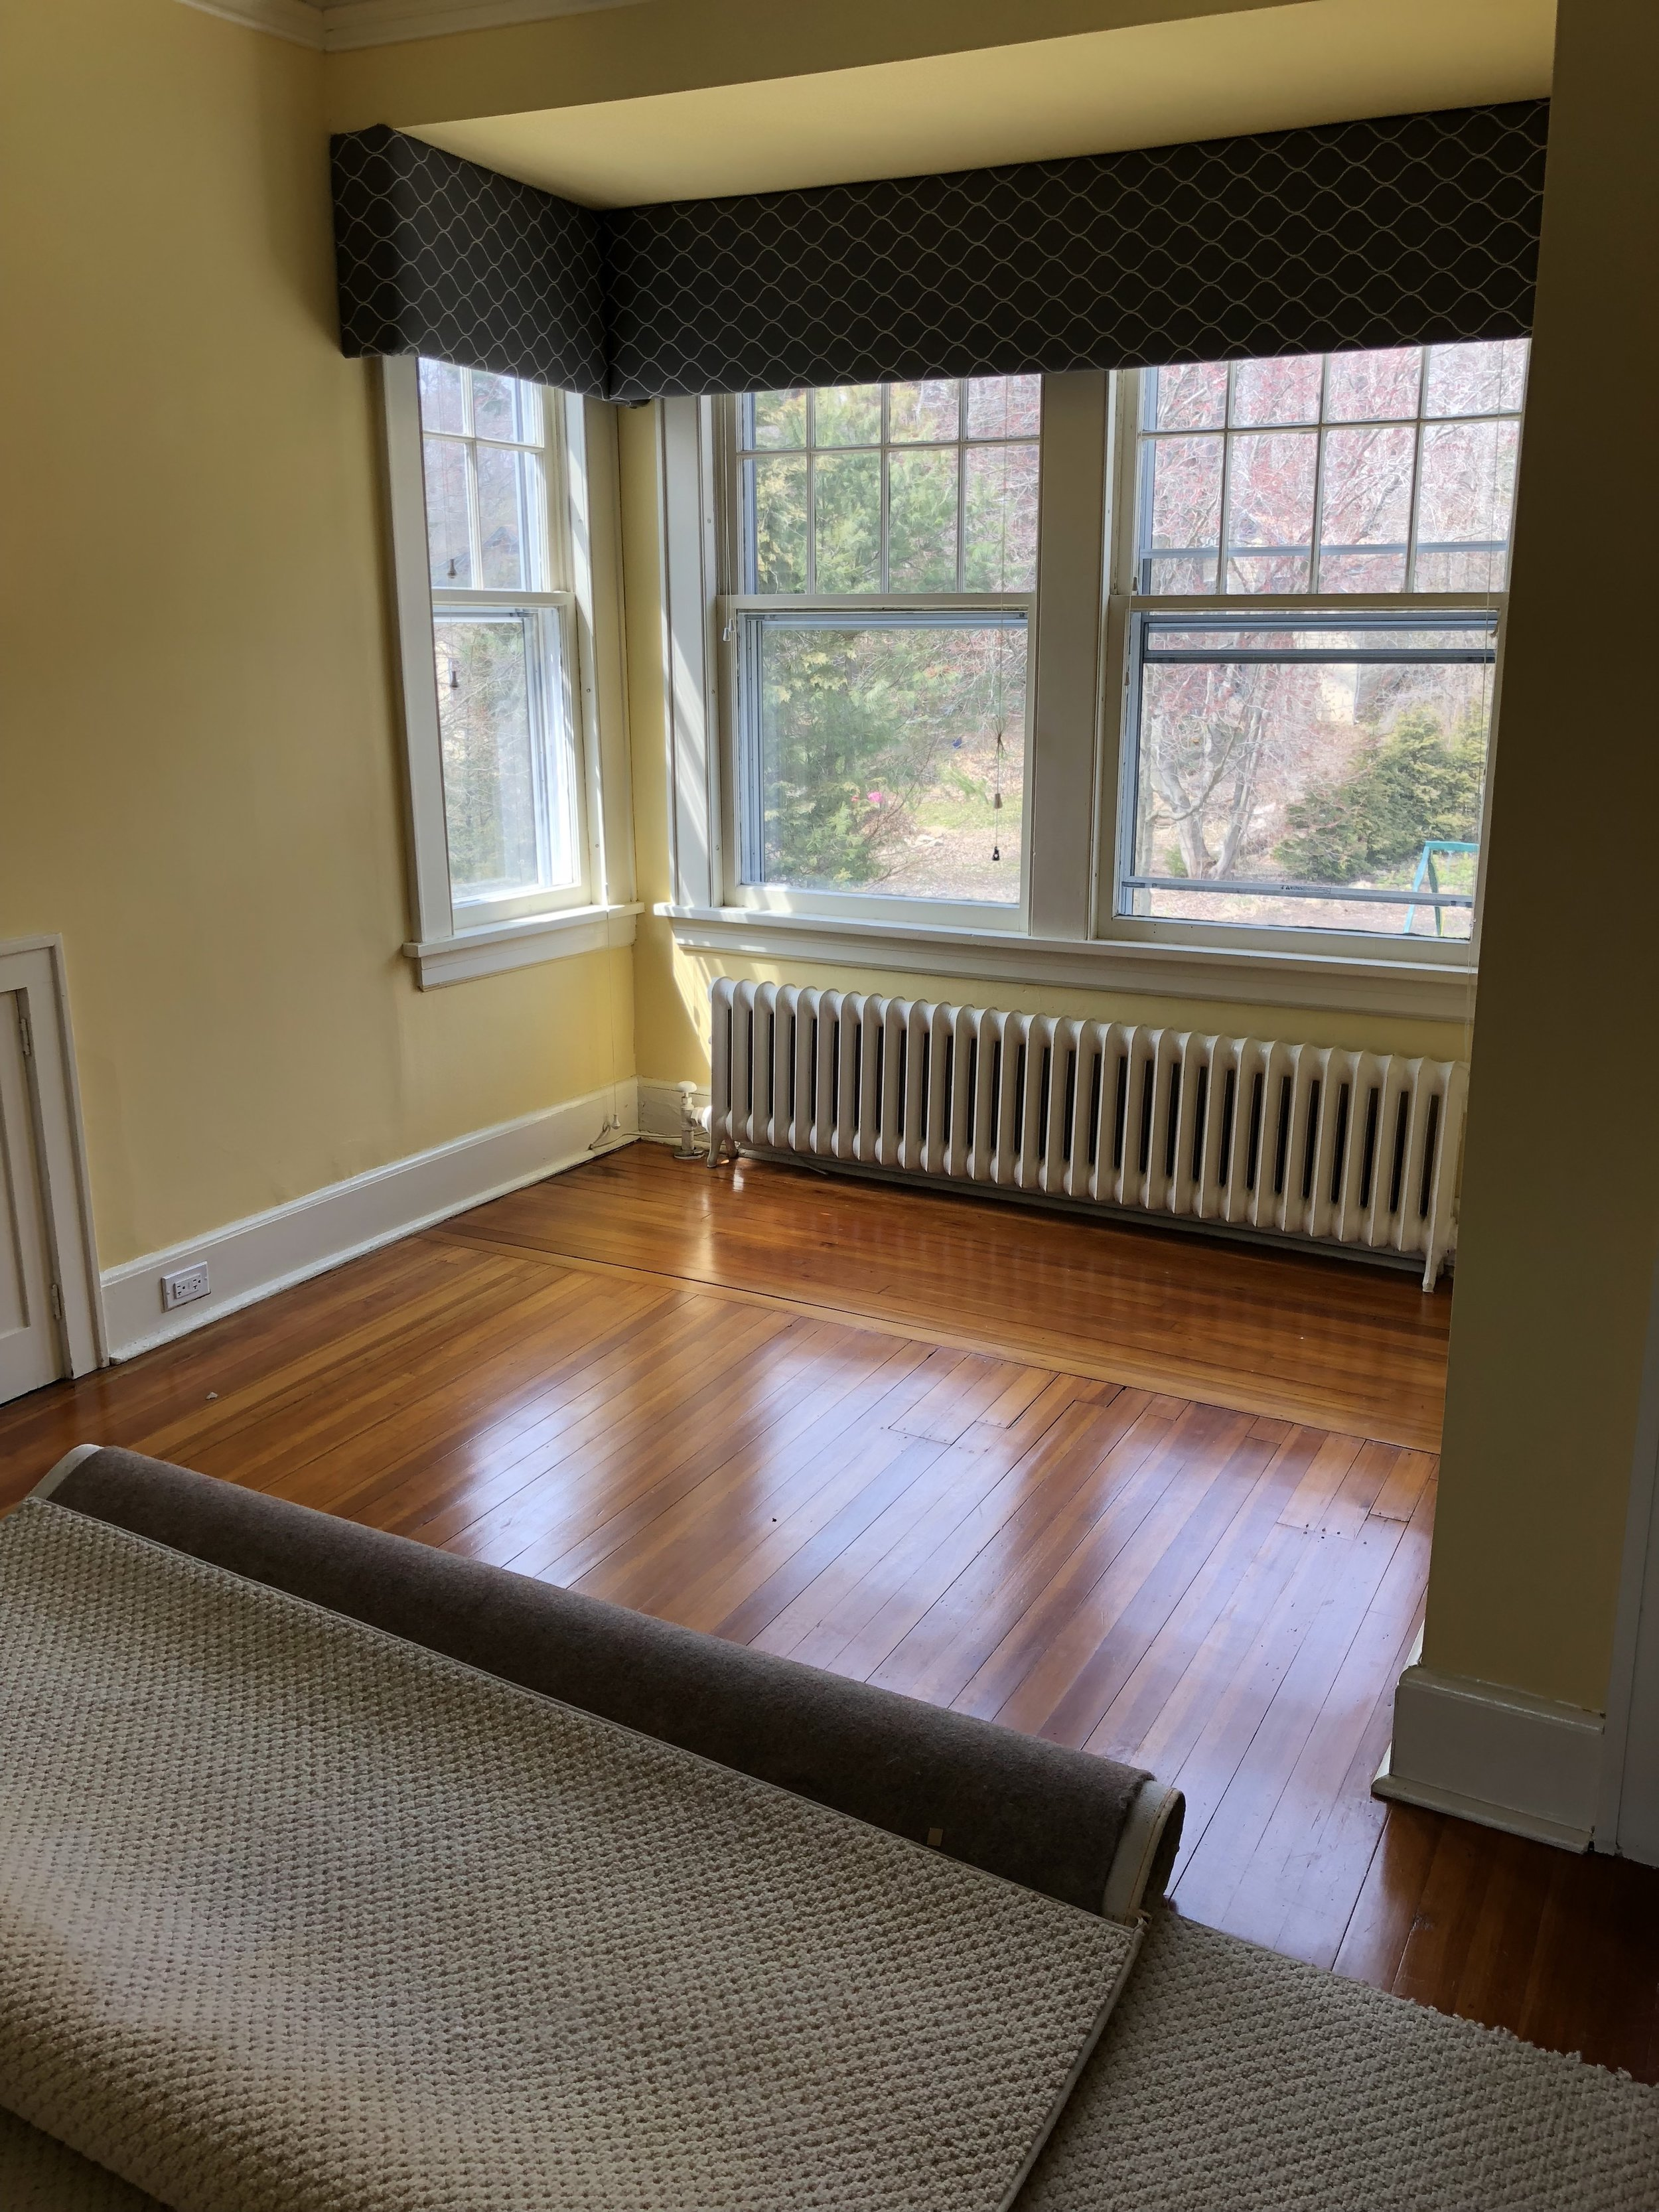 """The """"before"""". The different orientation of the hardwood floor in this part of the room drives me insane! It must have been patched (poorly) at some point, and it creates a major eye sore."""